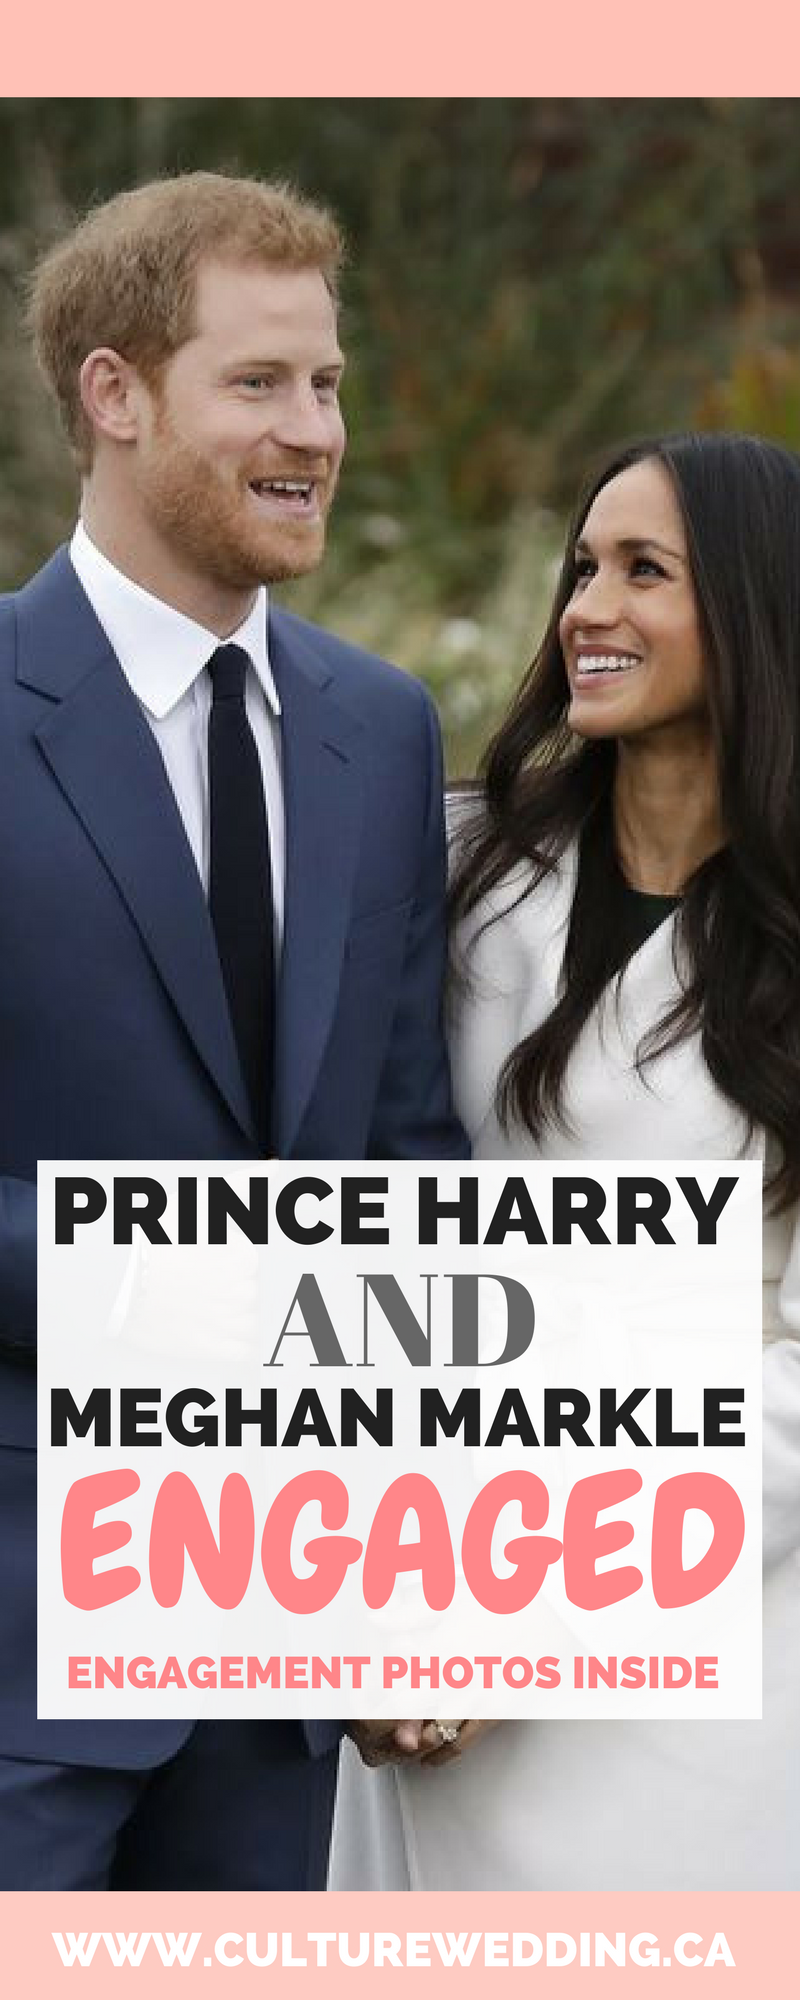 Prince harry engaged